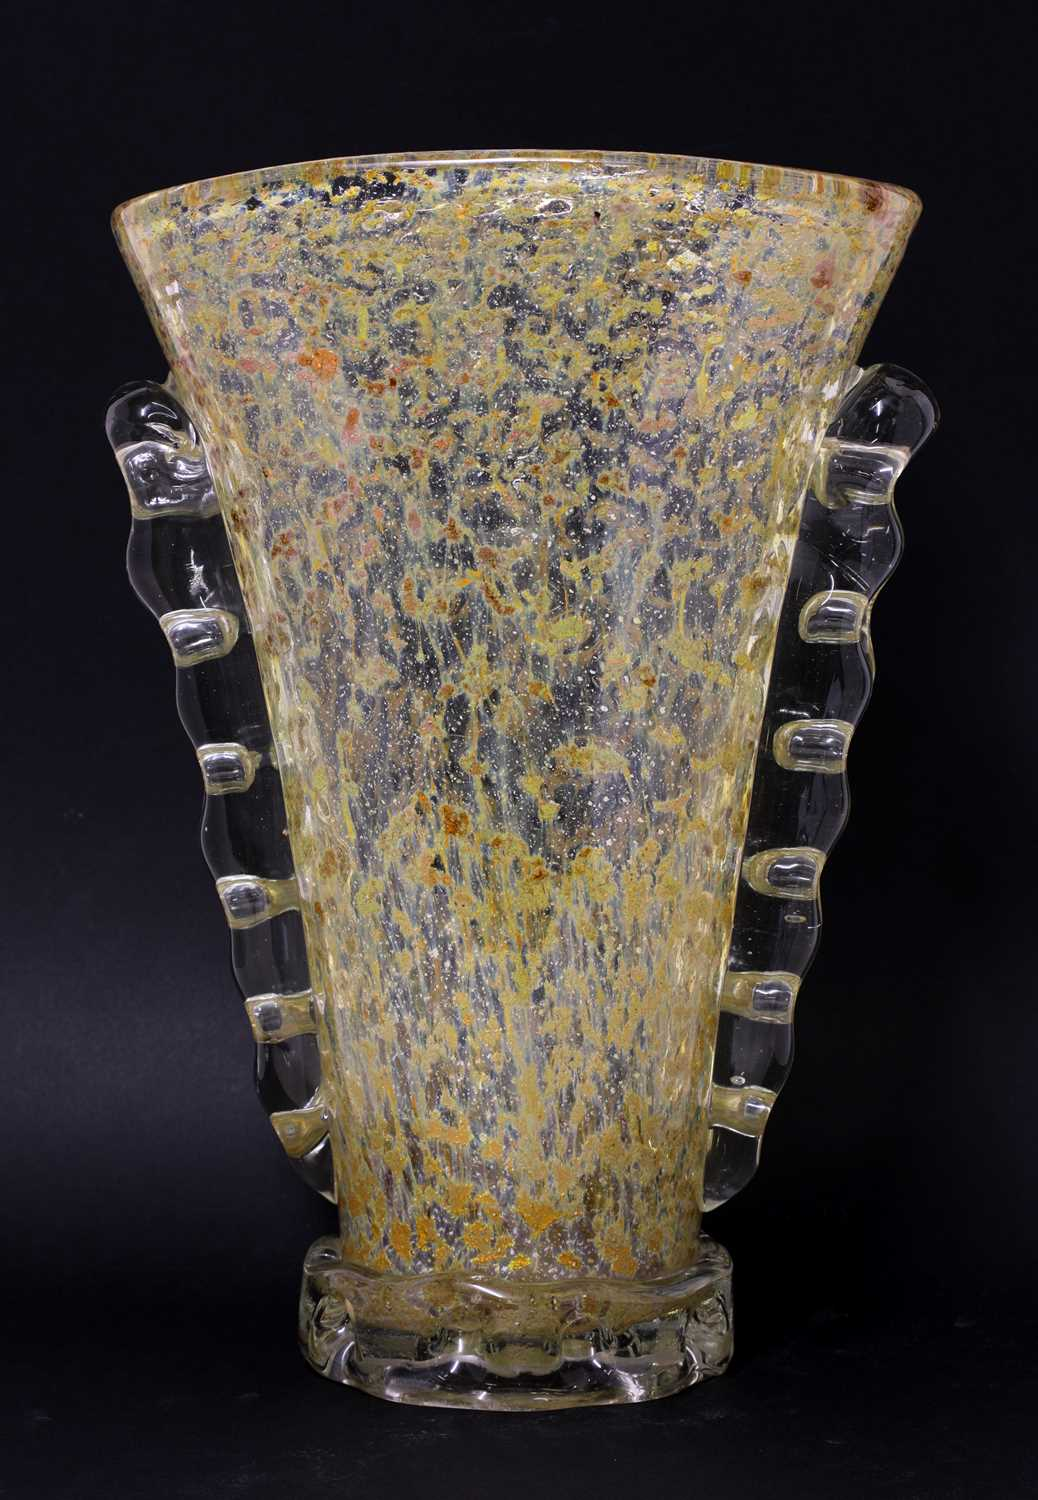 A Murano glass vase, - Image 7 of 8